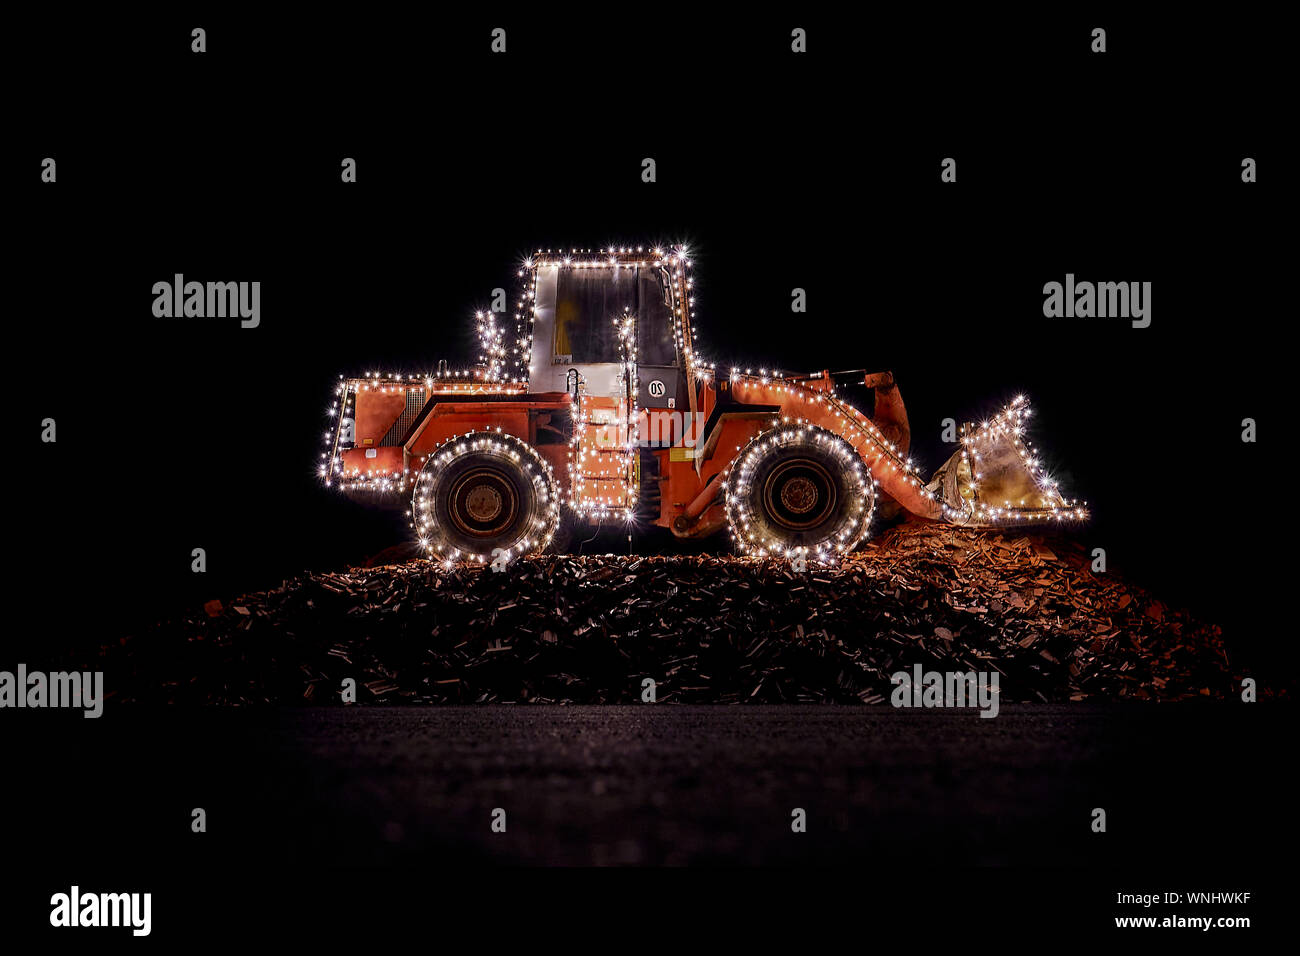 Blurred wheel loader decorated with lights at christmas Stock Photo